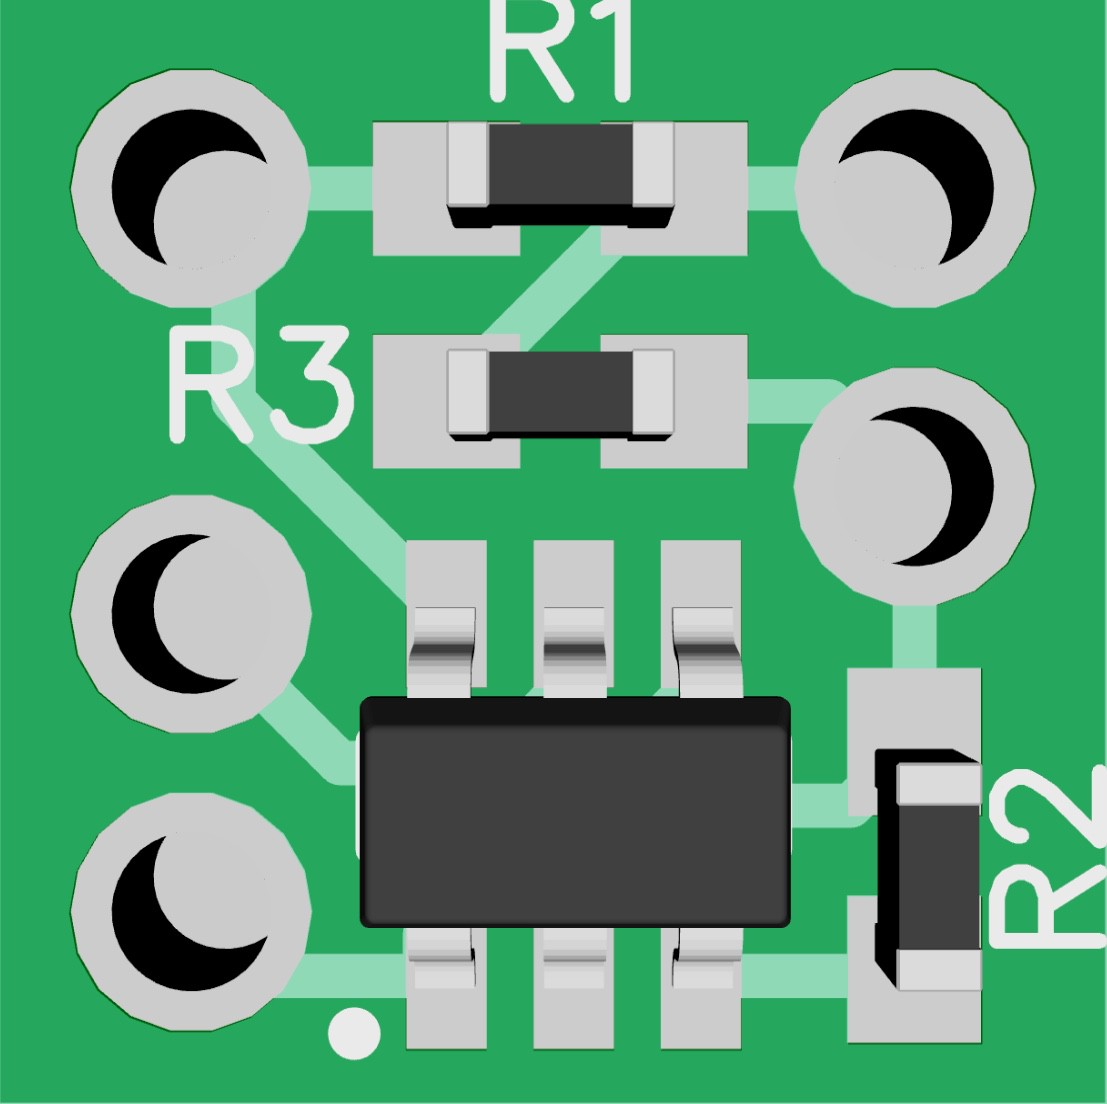 Frsky Smartport Inverter X8r Wiring Diagram Heres My Final Attempt At The Pcb